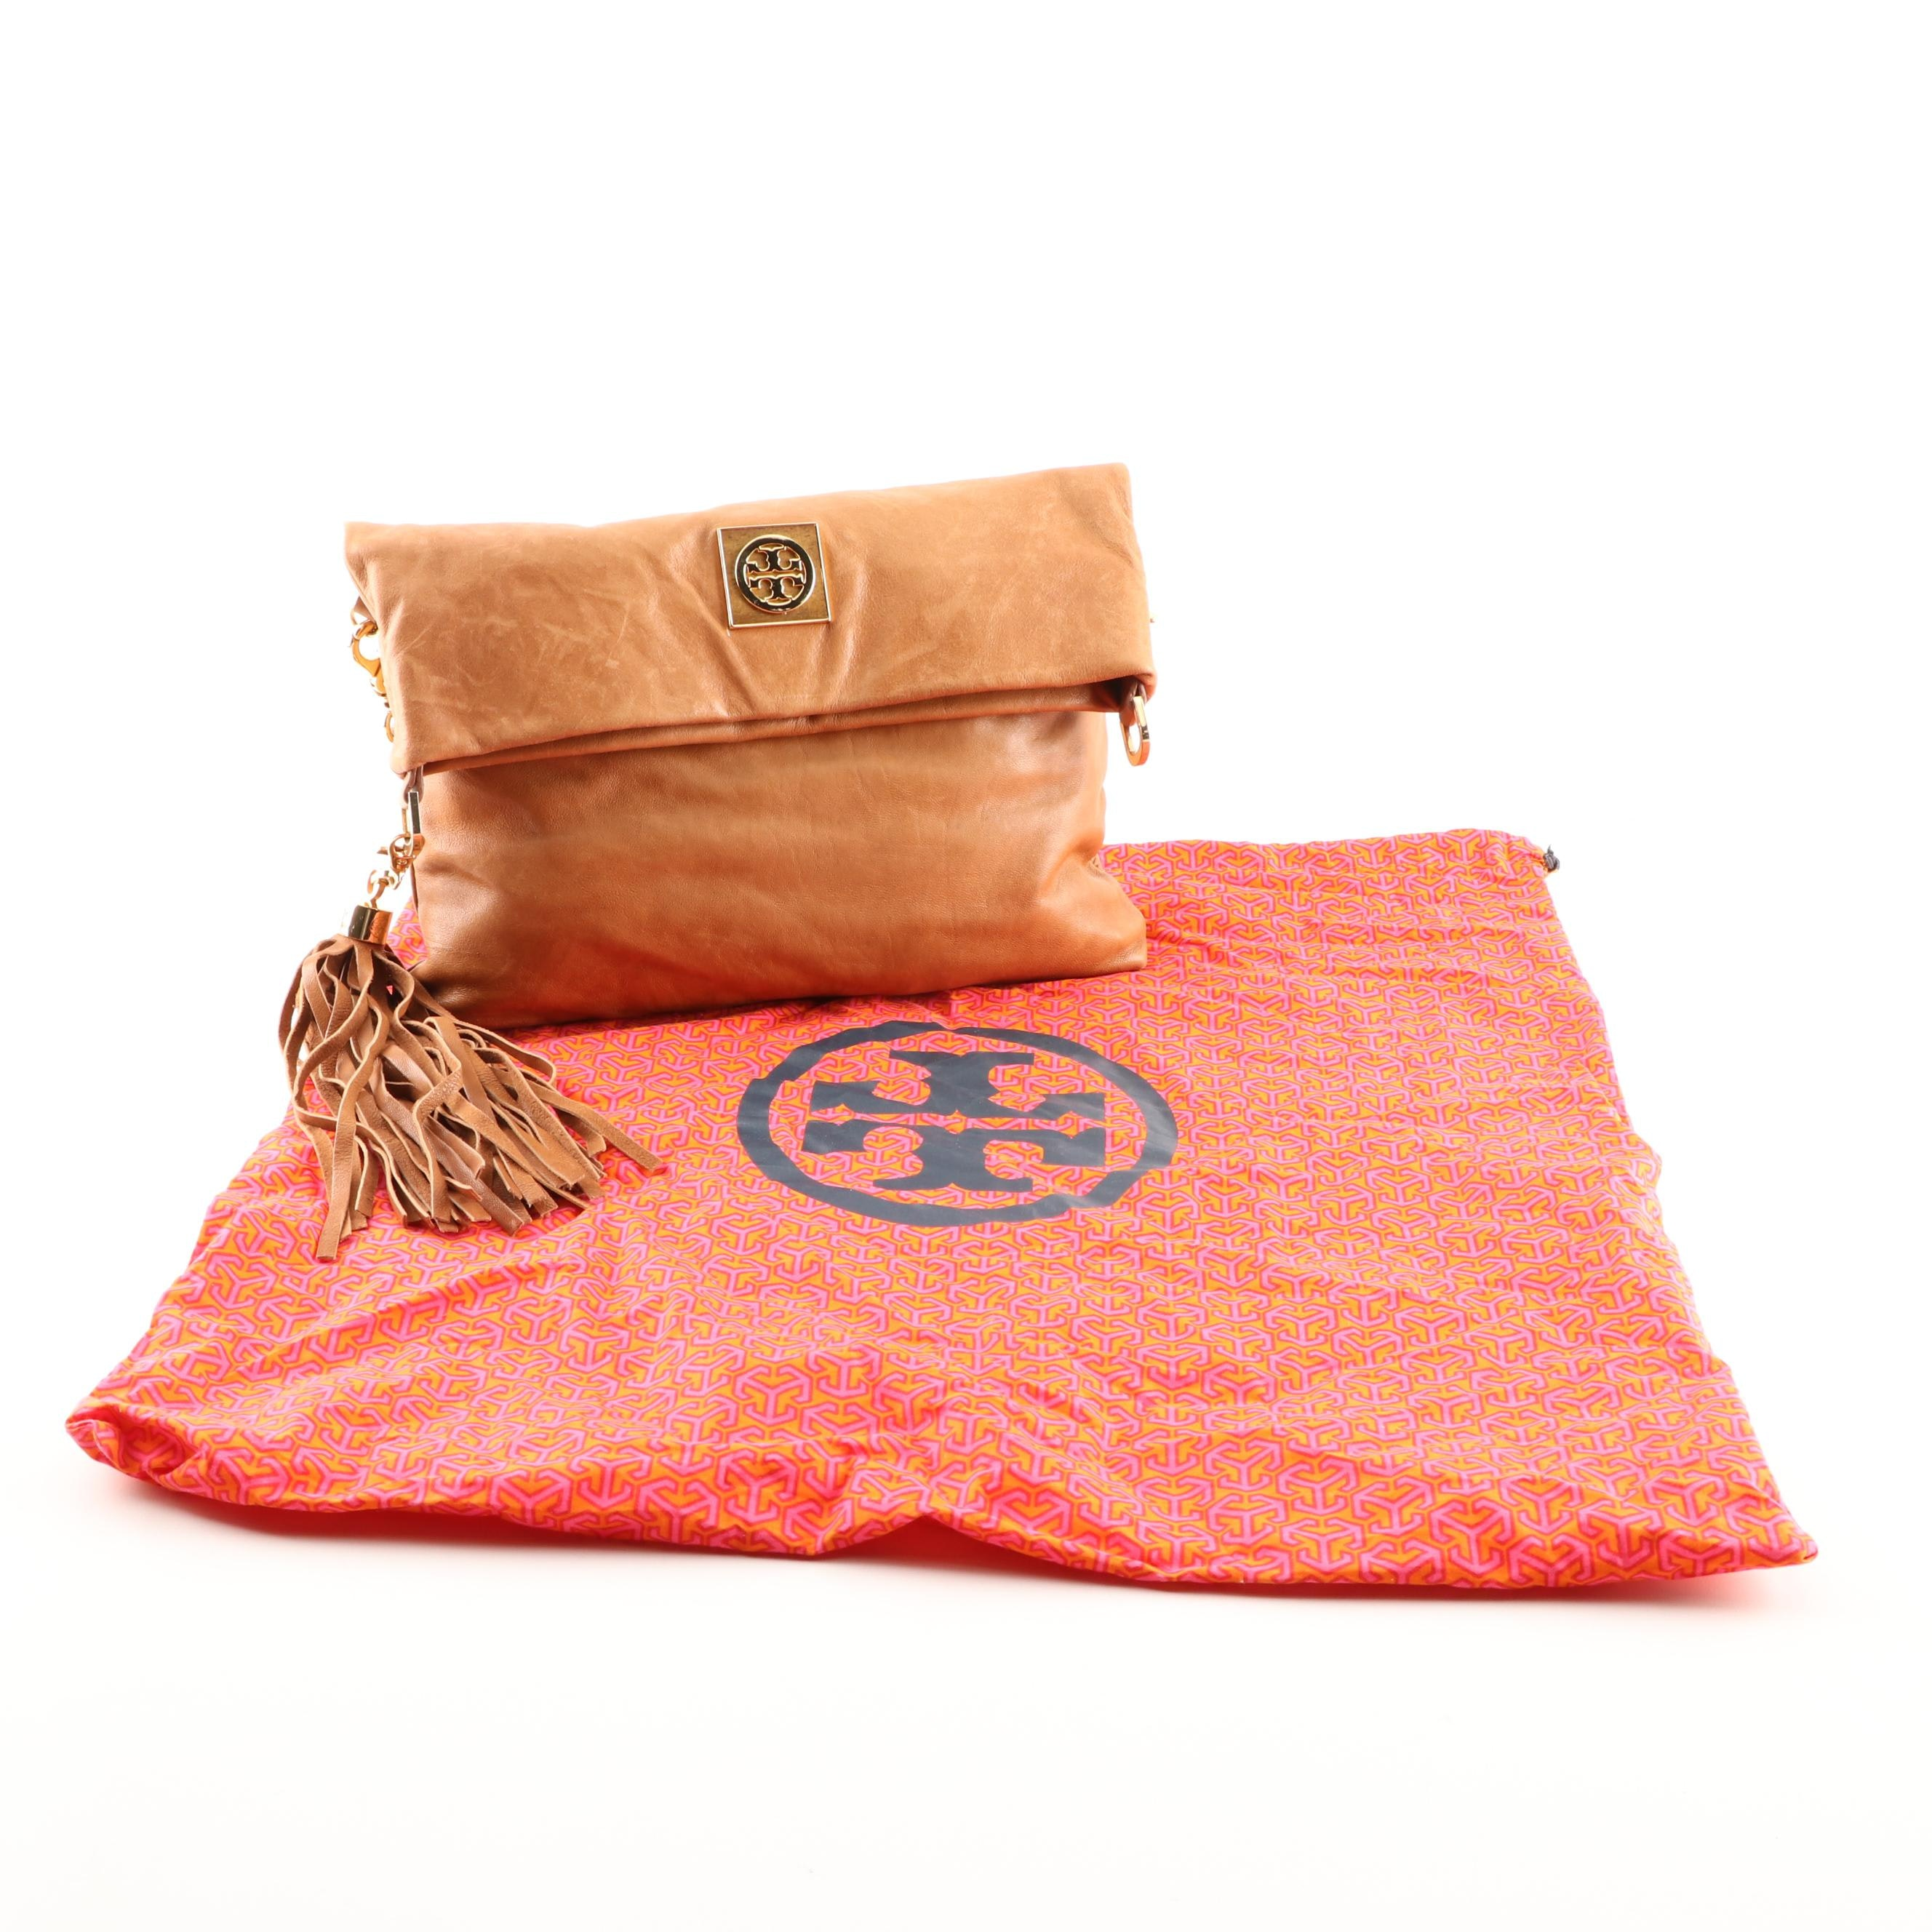 Tory Burch Distressed Leather Foldover Crossbody Bag with Fringed Tassel